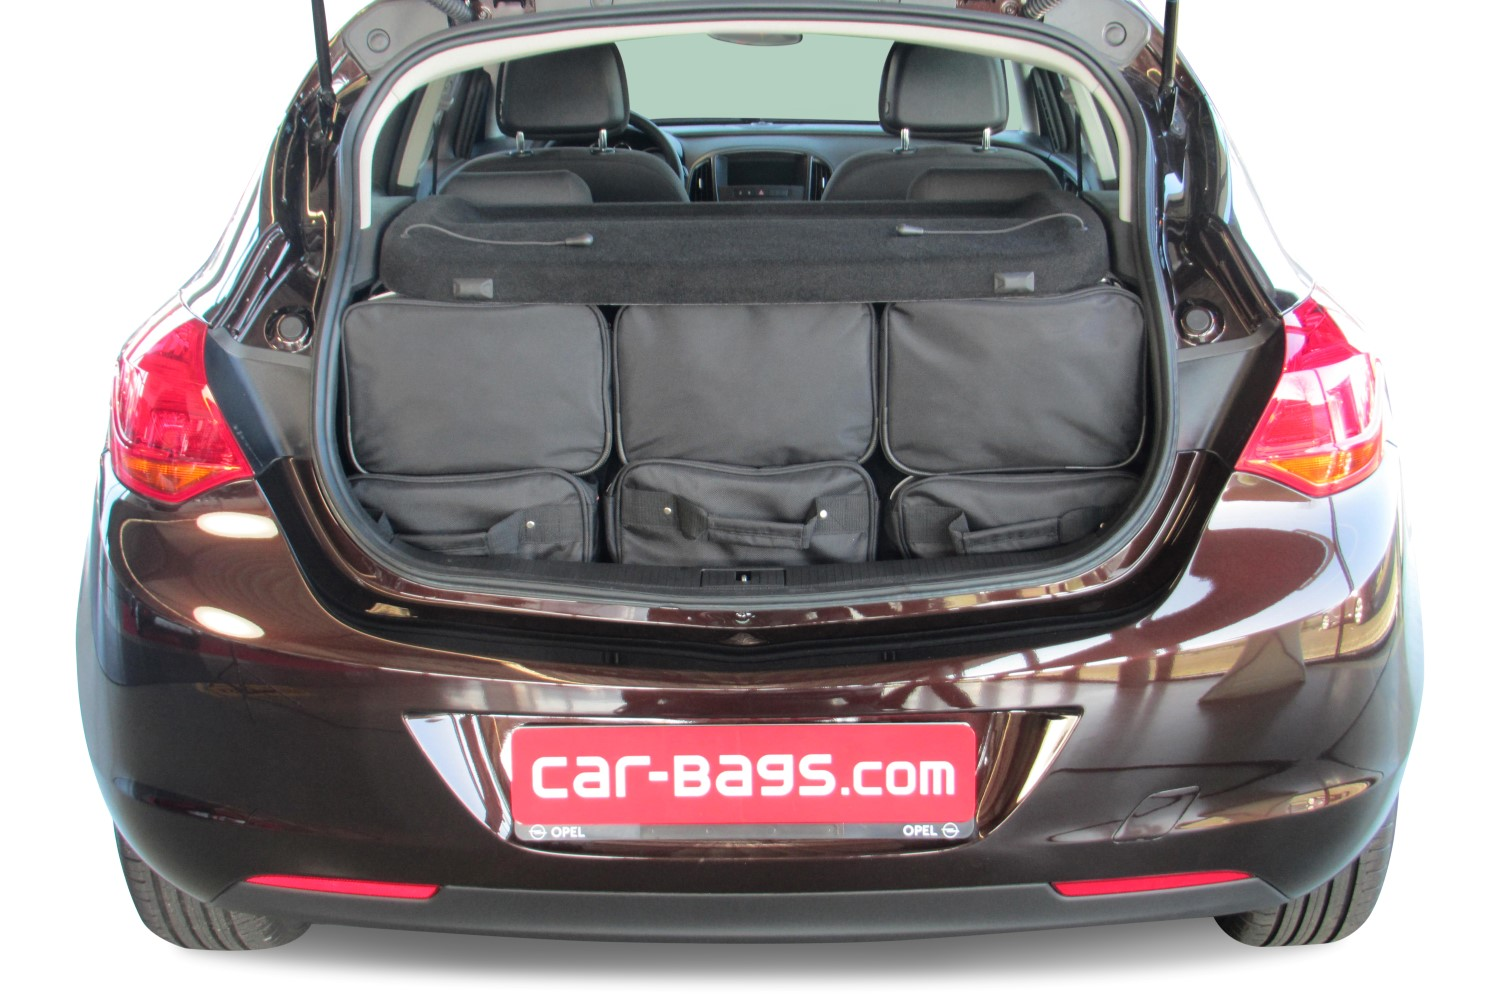 astra opel astra j 2009 2015 5d car bags reistassenset. Black Bedroom Furniture Sets. Home Design Ideas